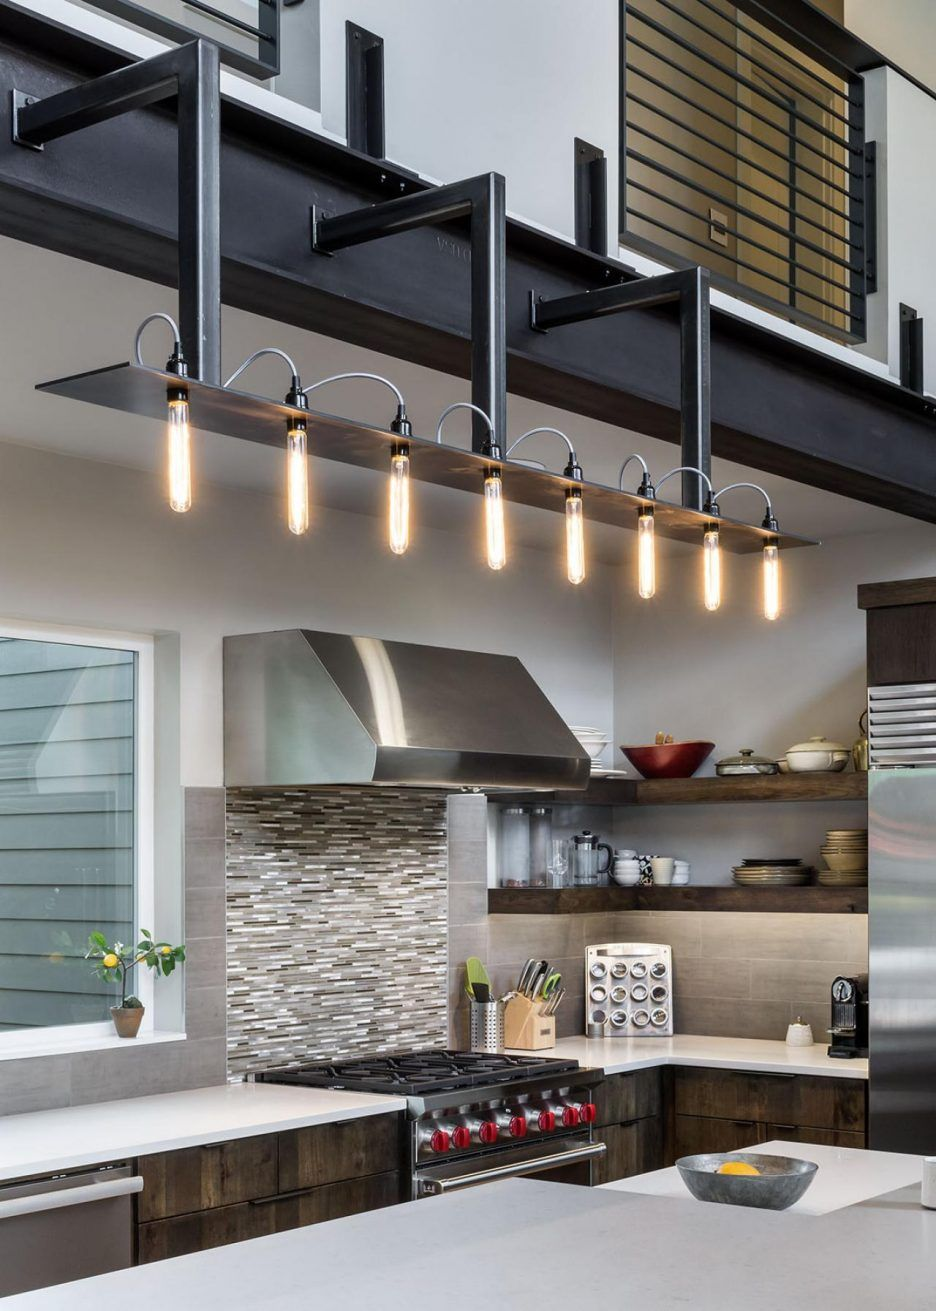 Kitchen Ceiling Lights Kitchen Ceiling Fans With Lights In 2020 With Images Industrial Light Fixtures Industrial Kitchen Lighting Industrial Pendant Light Fixtures